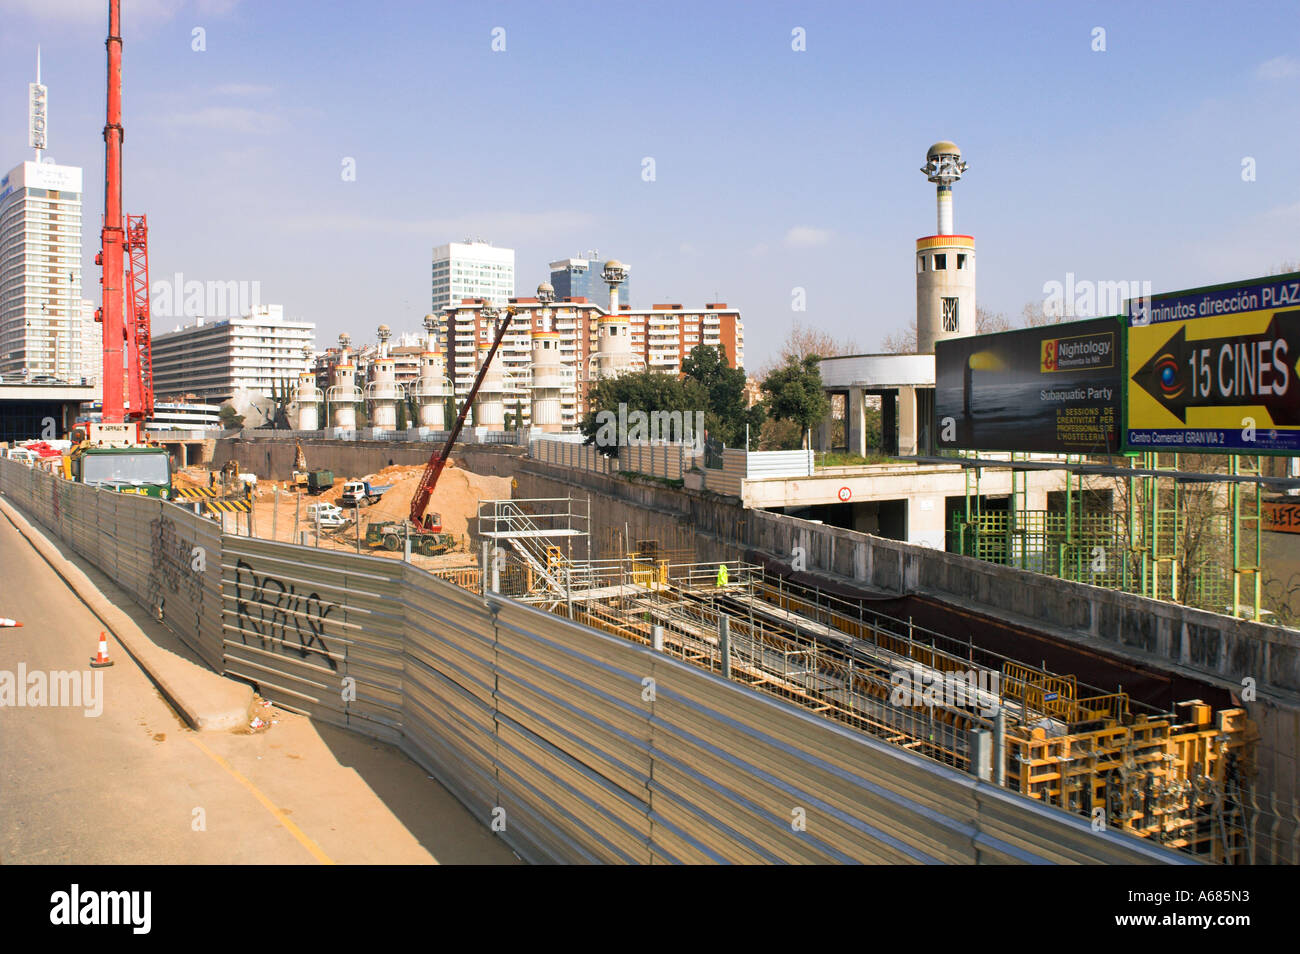 Spain Barcelona At Sans central railway station construction work for new high speed Ave train The city is full of cranes - Stock Image